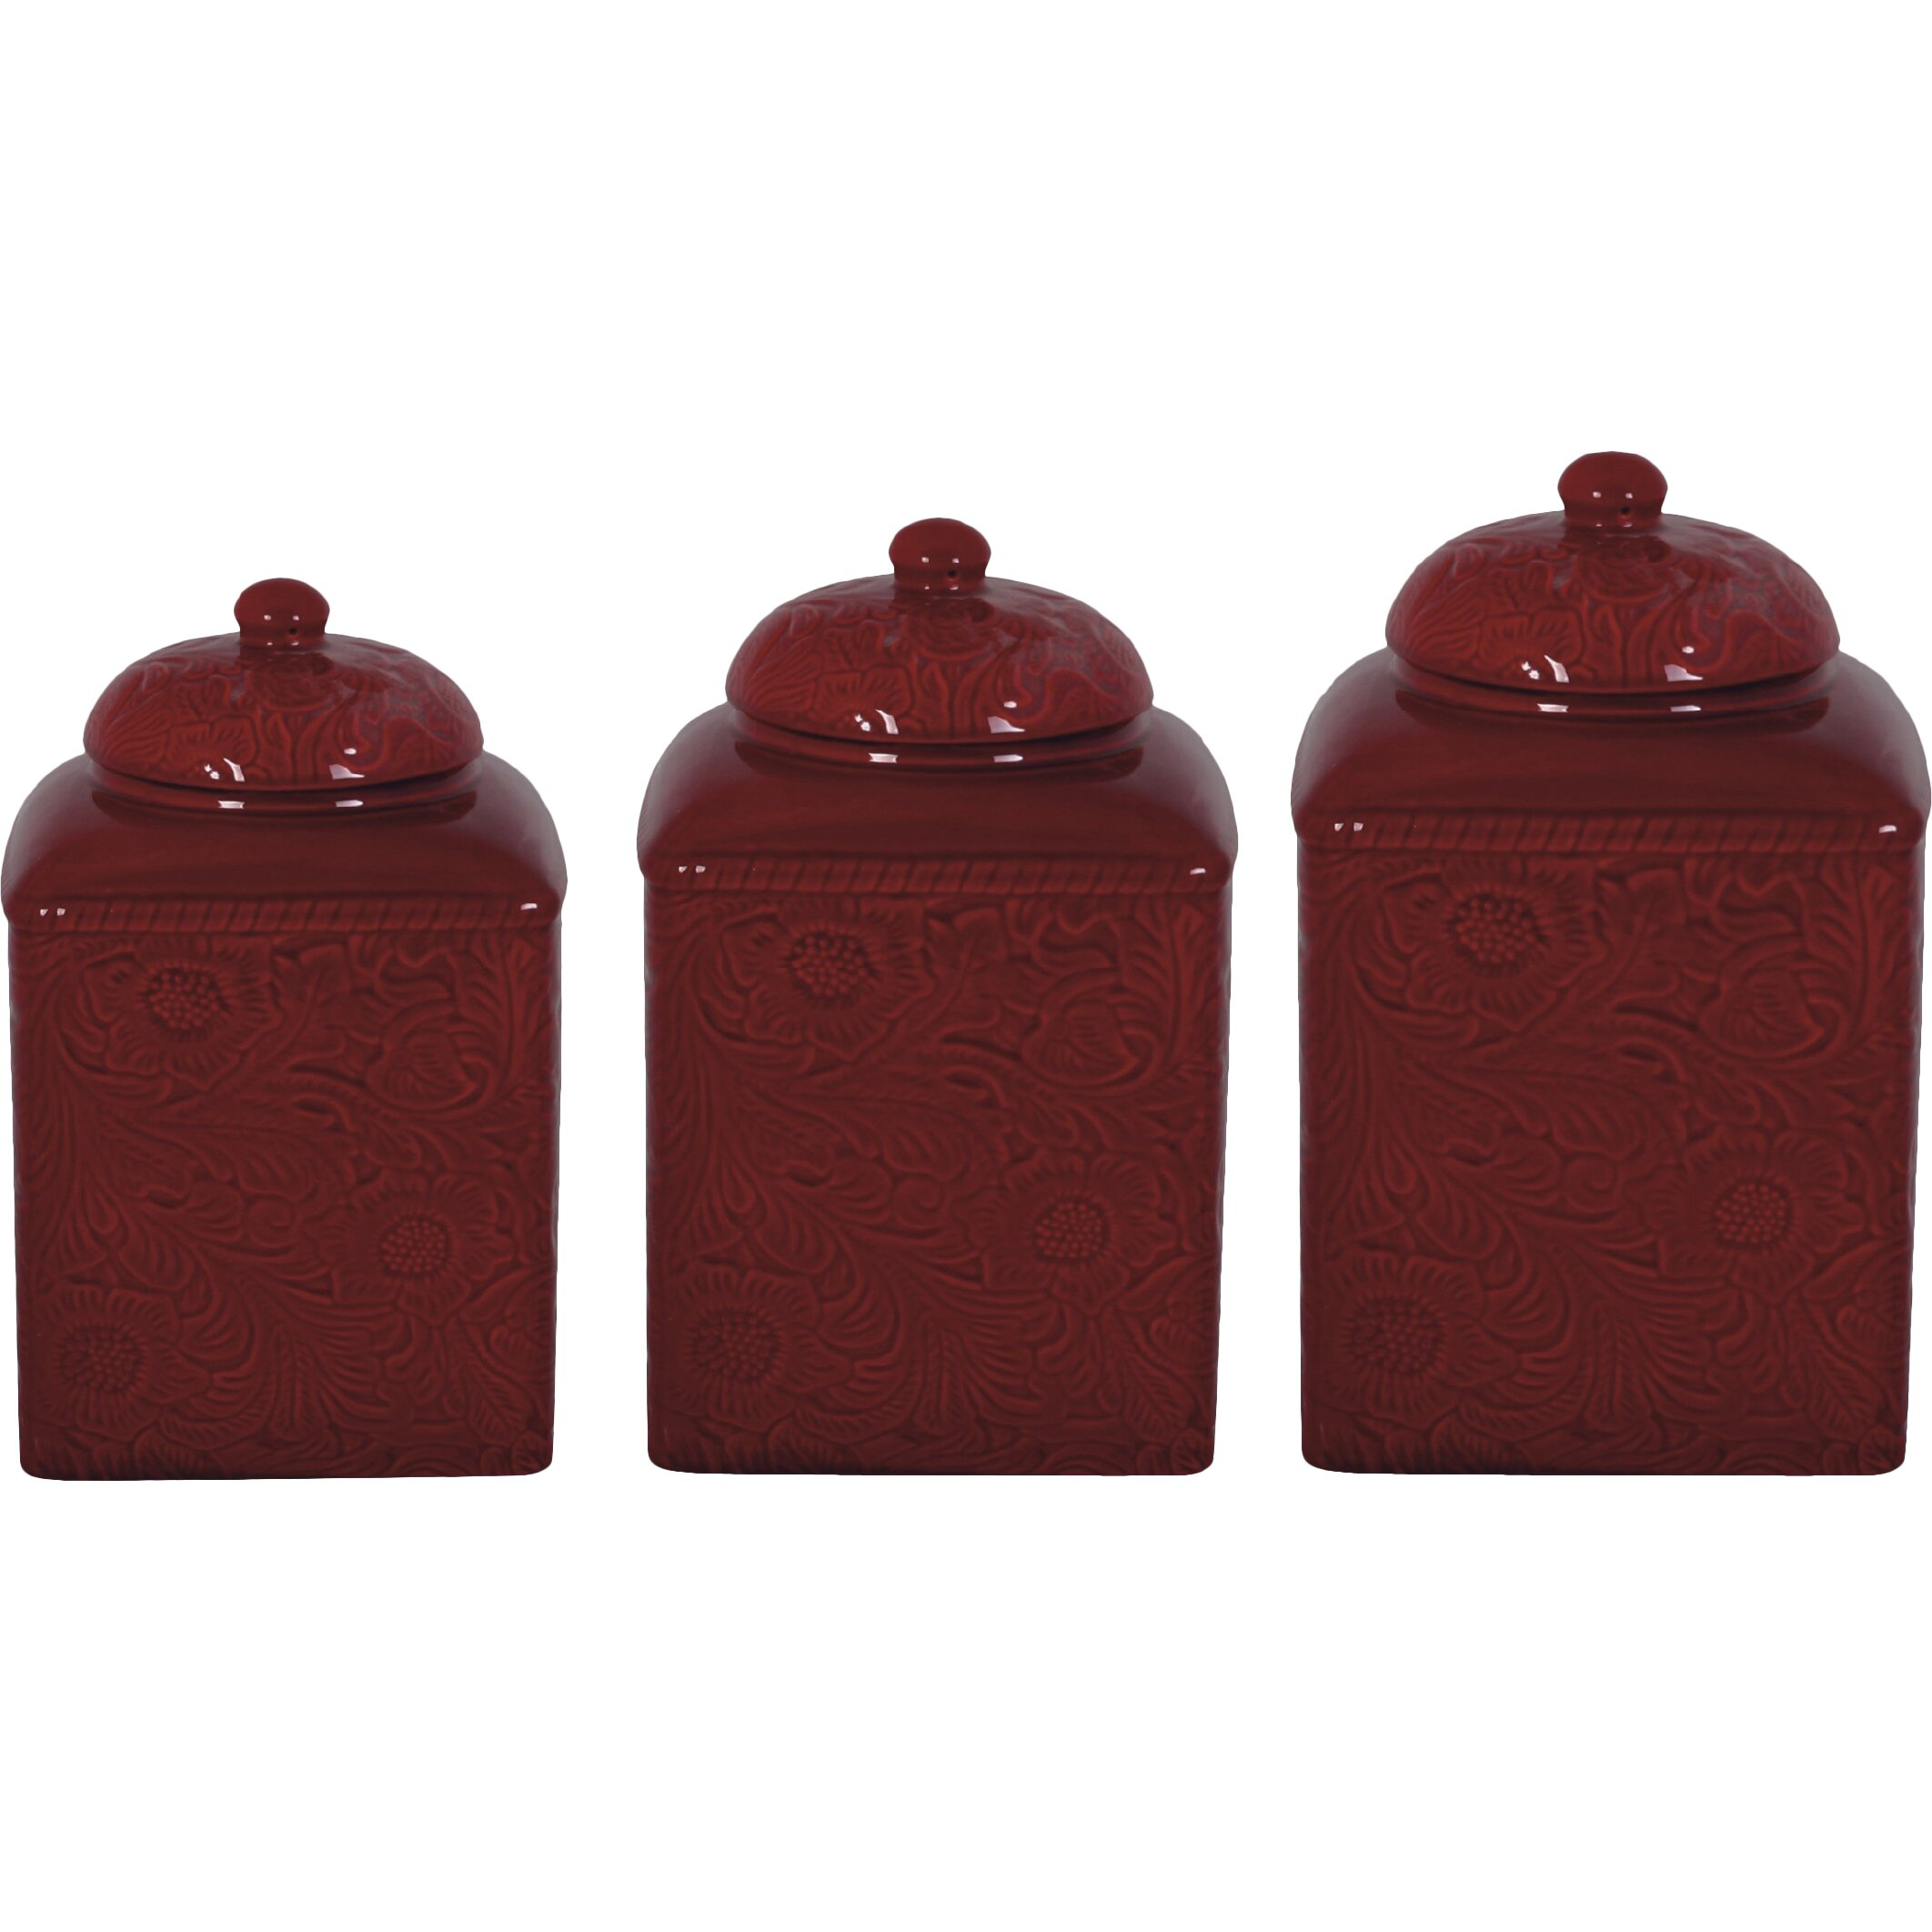 Rustic Kitchen Canister Sets Primitive Kitchen Canisters Primitive Mail Organizer Desk Kitchen